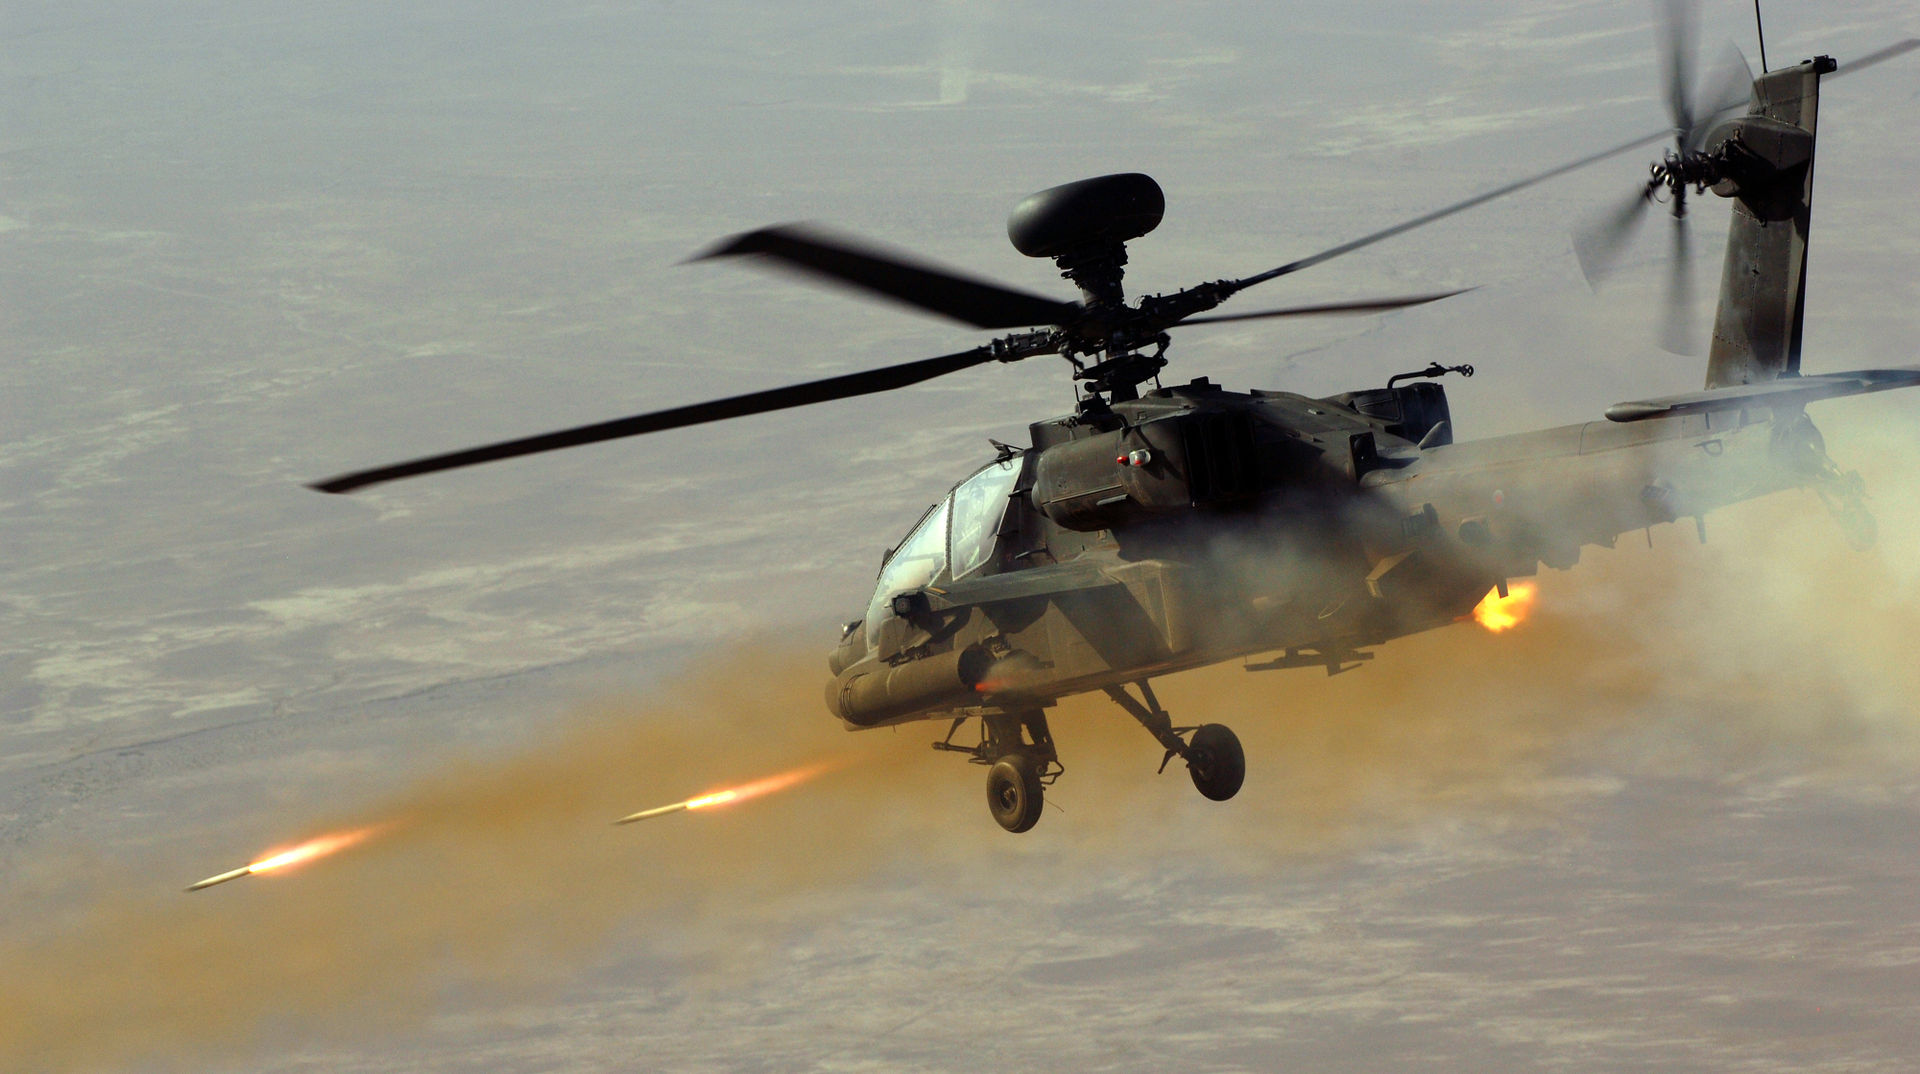 Attack helicopter - Wikipedia